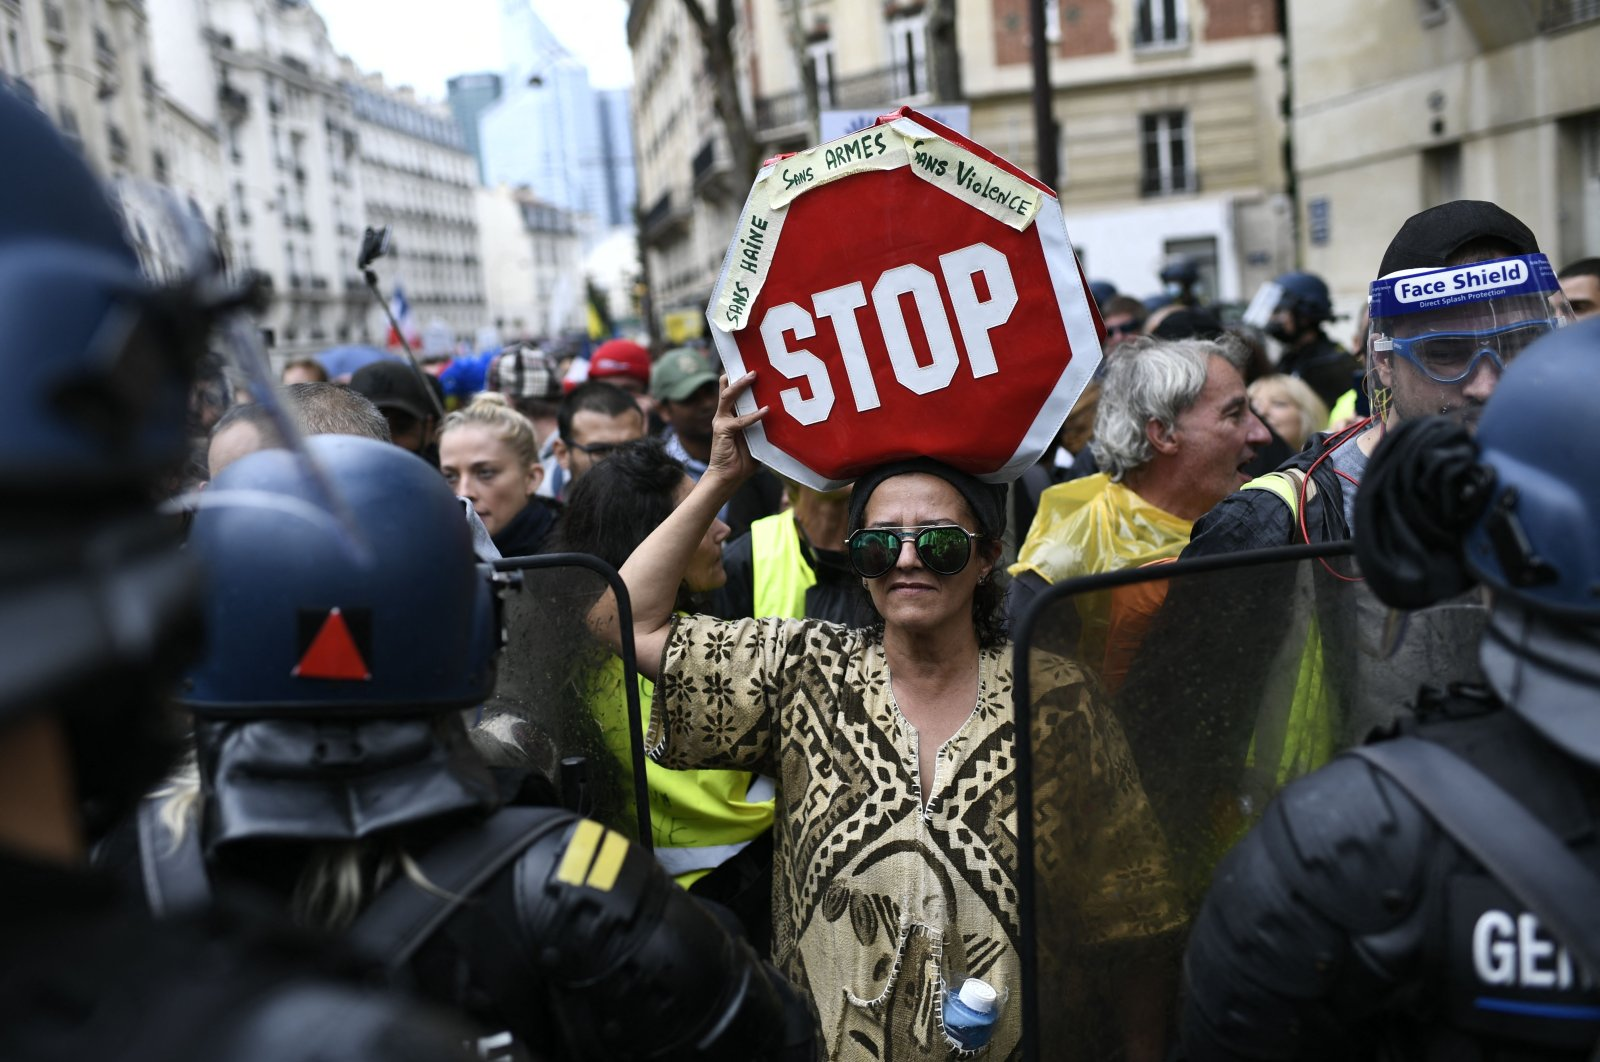 A protestor holds a sign reading 'Without hatred weapon or violence - Stop' in front of riot forces during a demonstration, part of a national day of protest against the mandatory COVID-19 health pass to access most of the public space, near the Pont de Neuilly, the suburb of Neuilly-sur-Seine, western Paris, Aug. 7, 2021. (AFP Photo)